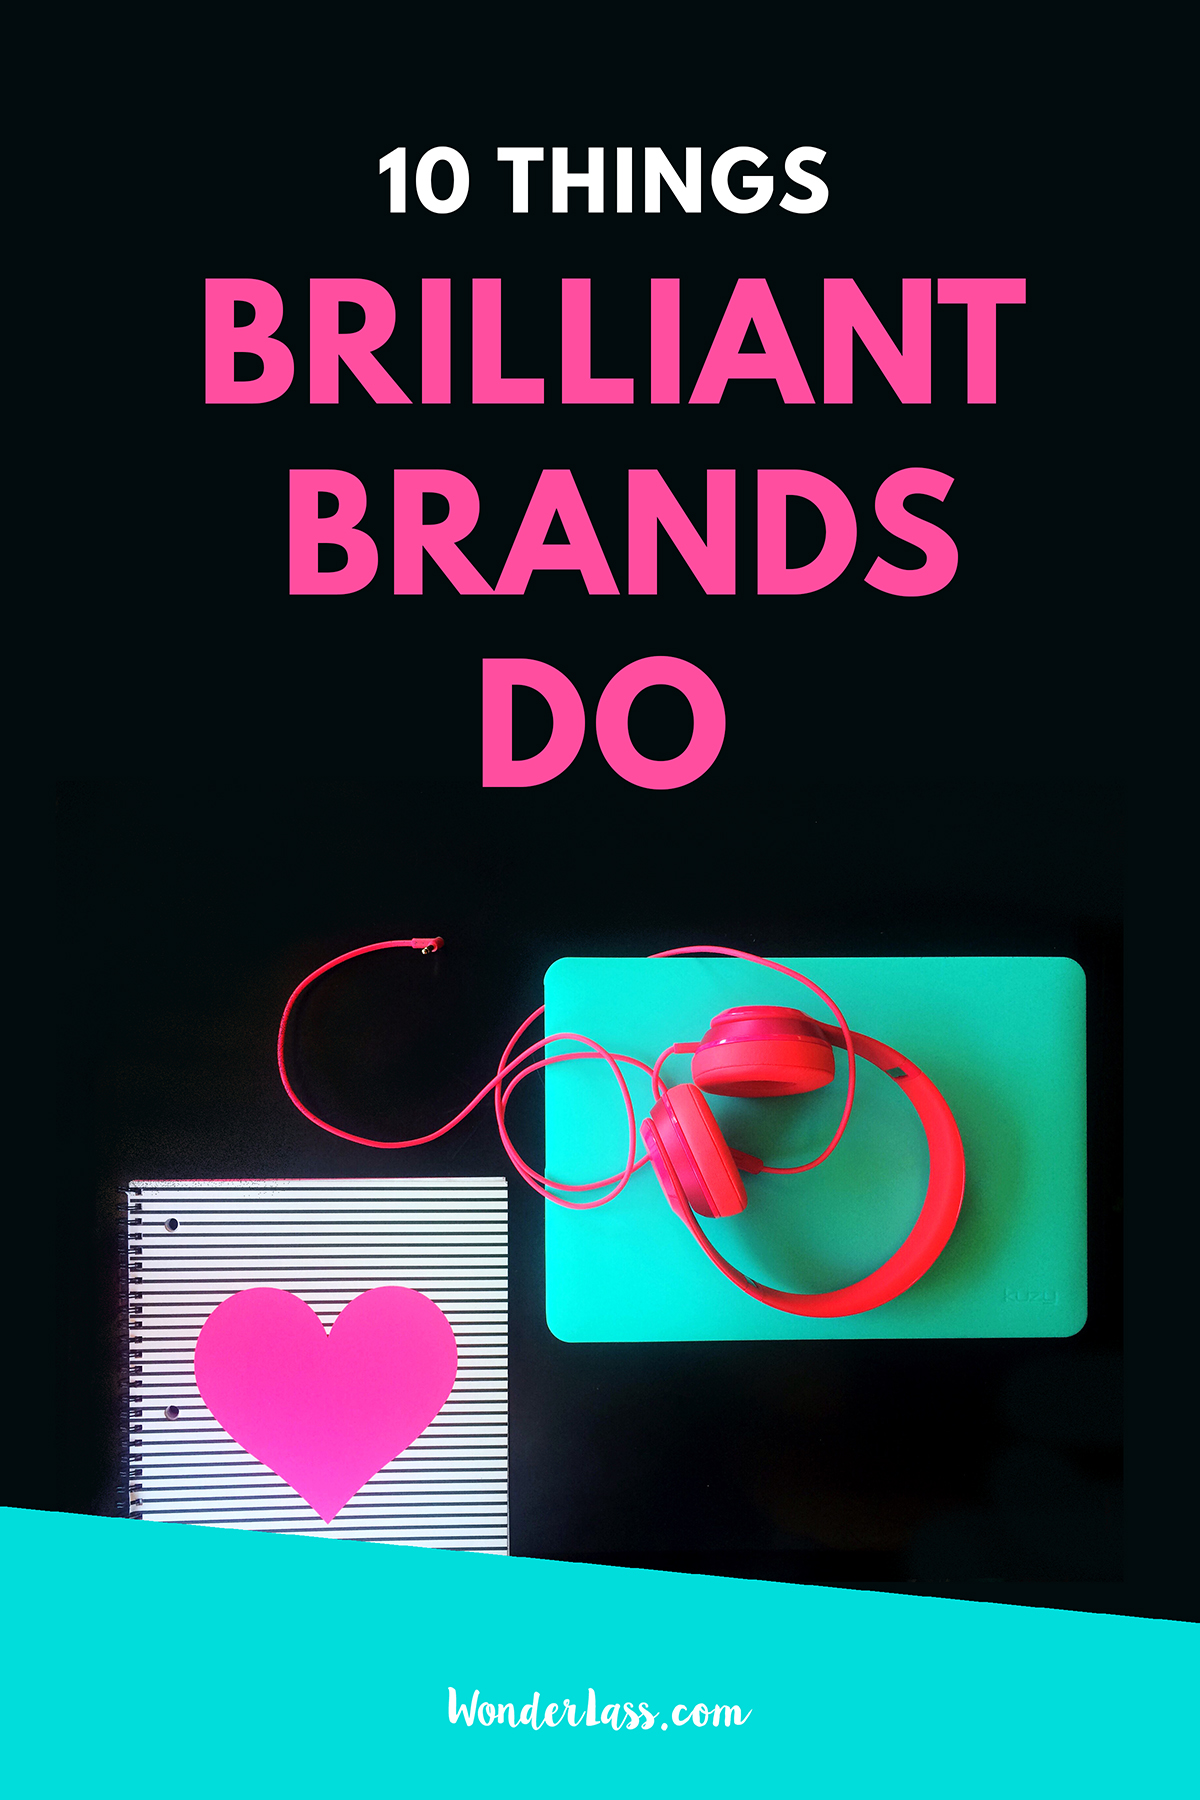 10 Things Brilliant Brands Do | If you want to stand out online and create an amazing brand, check out this blog post to see what brilliant brands do! | Wonderlass